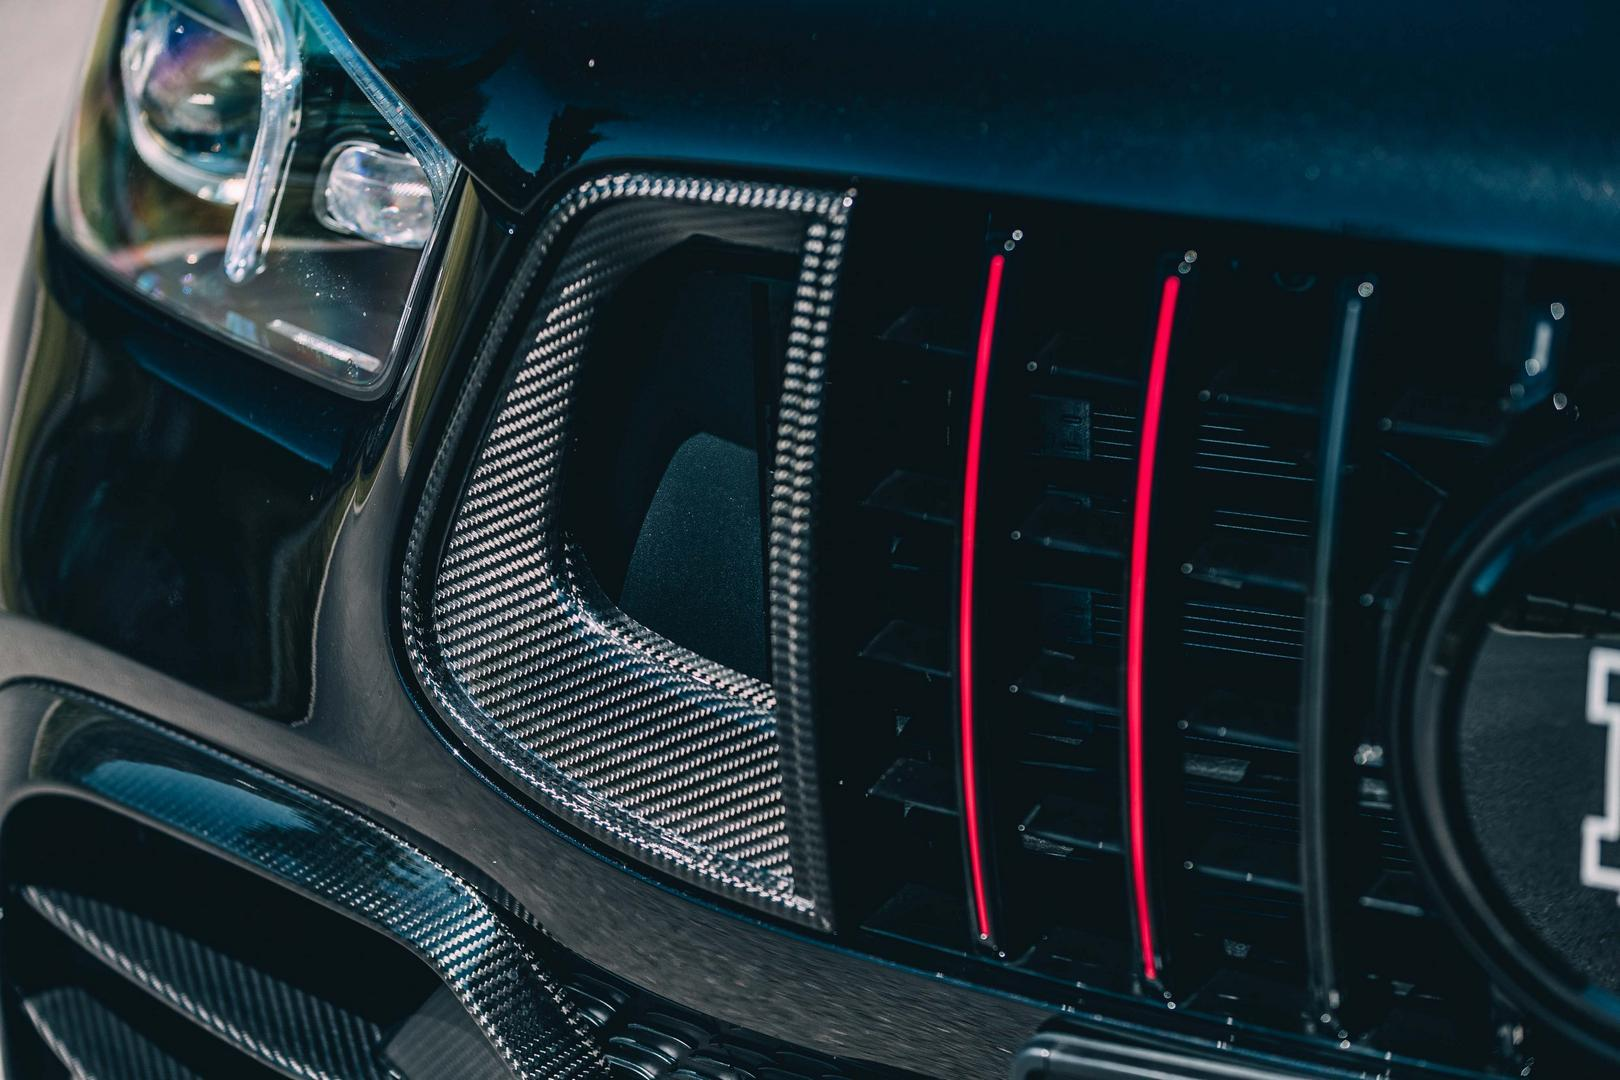 Brabus 800 GLE 63 S Coupe grille